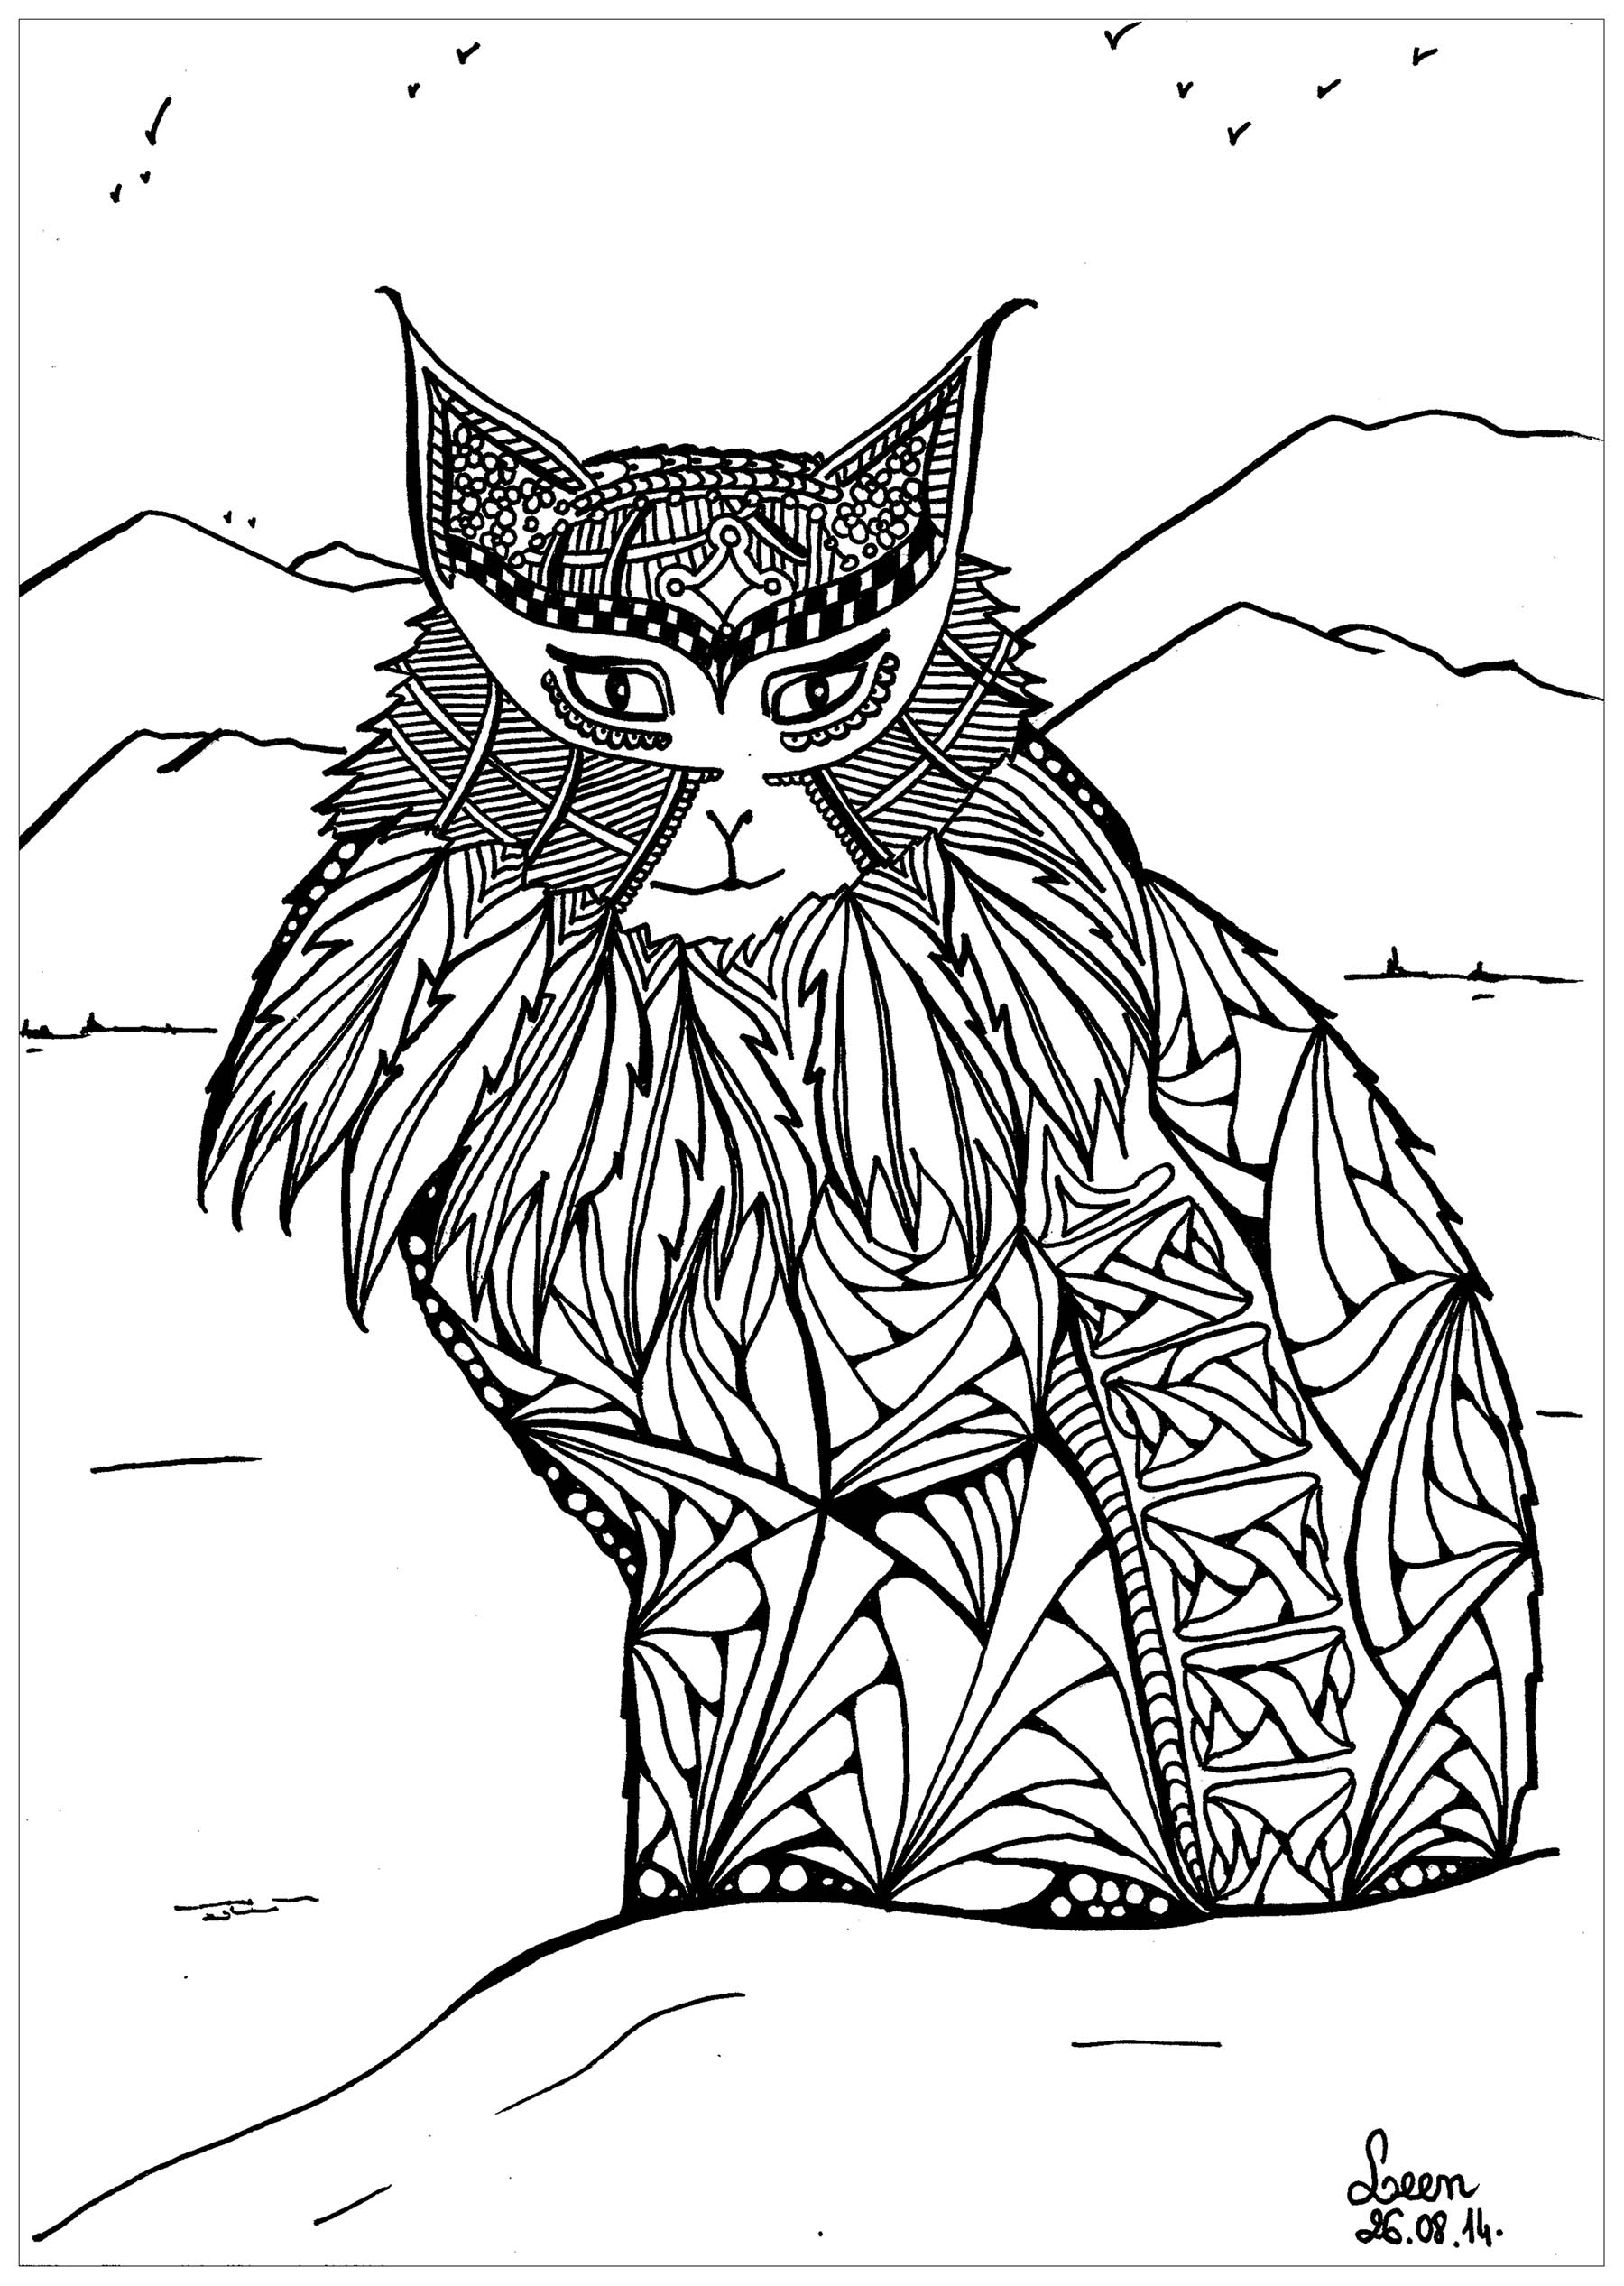 Simple Cat coloring page to print and color for free : desert cat